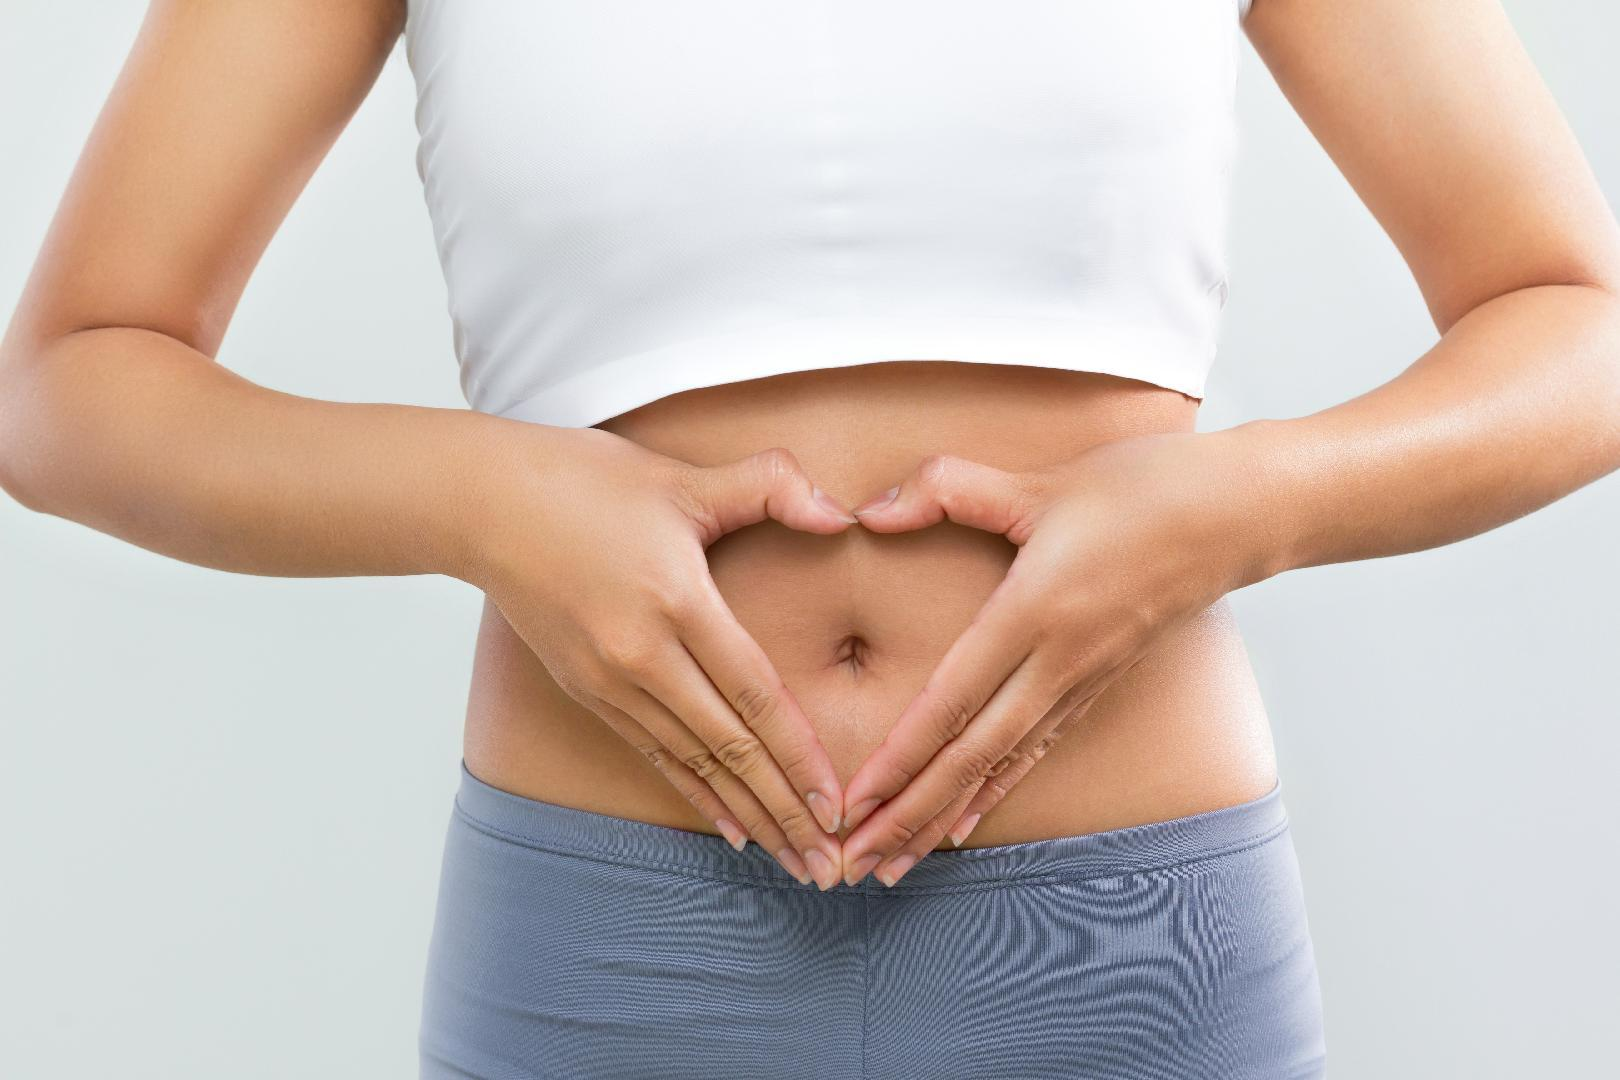 5 Foods that can Aid Digestion